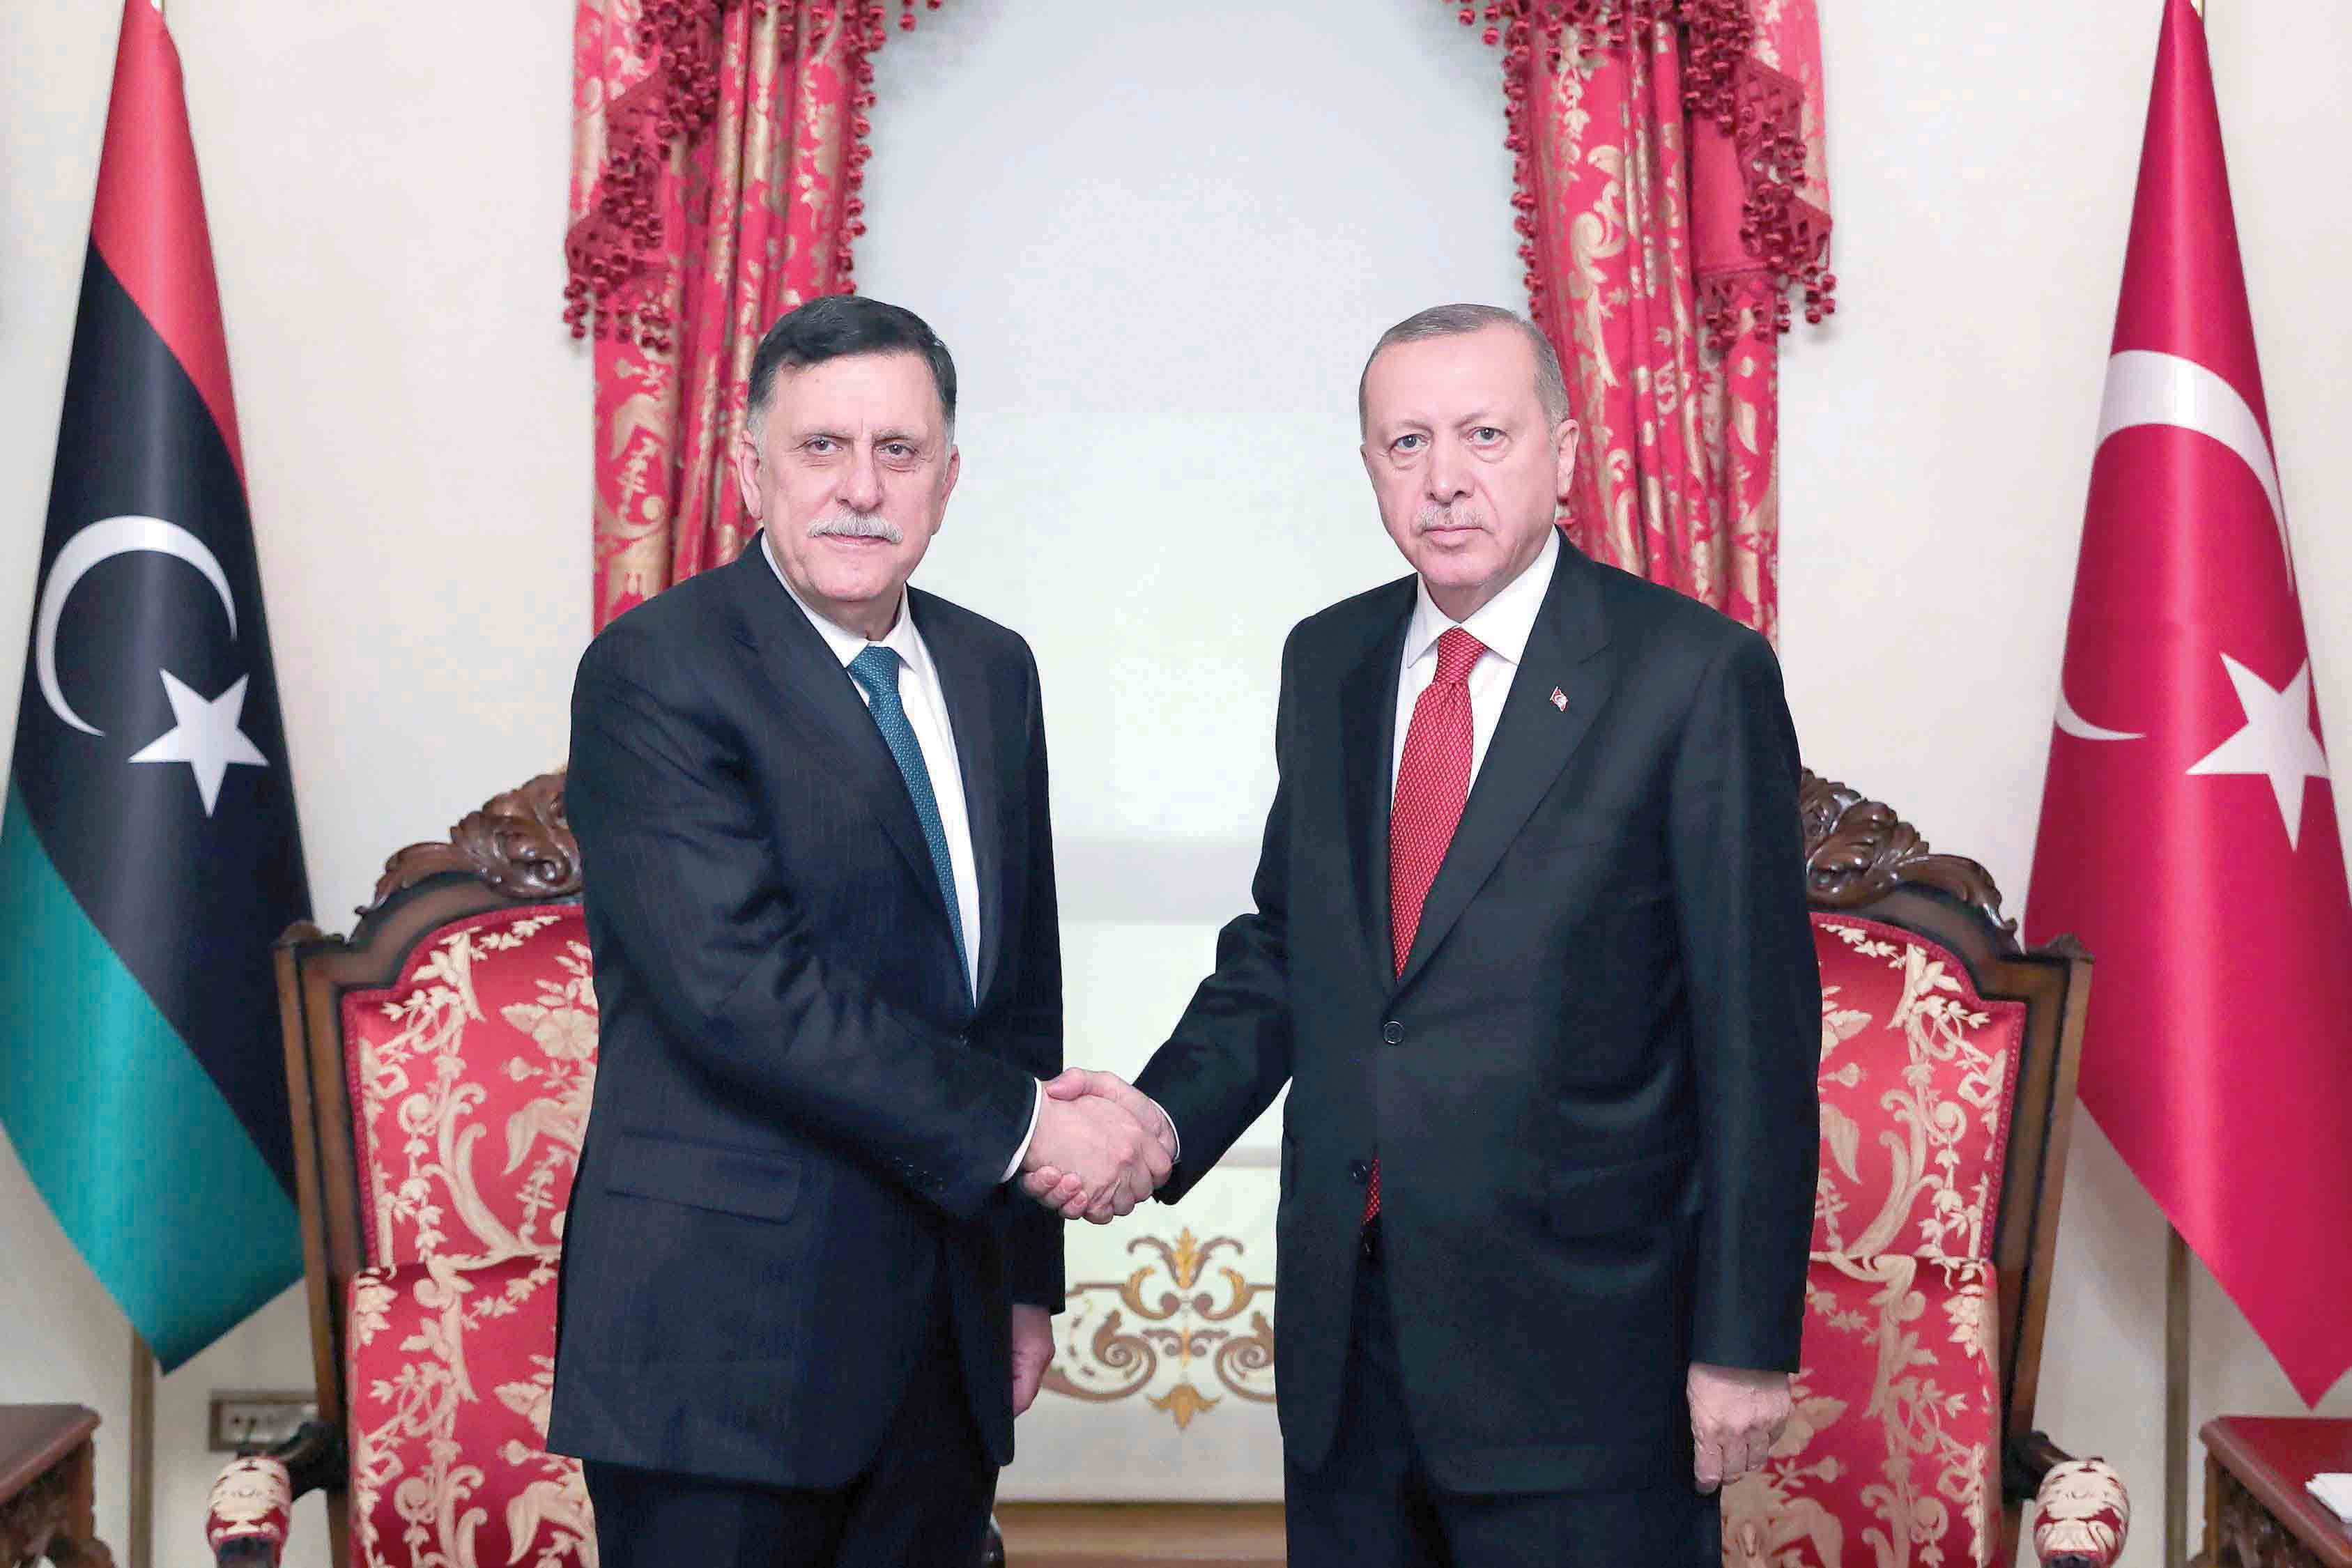 Unpredictable consequences. Turkish President Recep Tayyip Erdogan (R)  and the head of the Tripoli-based Government of National Accord Fayez al-Sarraj during their meeting in Istanbul, November 27. (AFP)